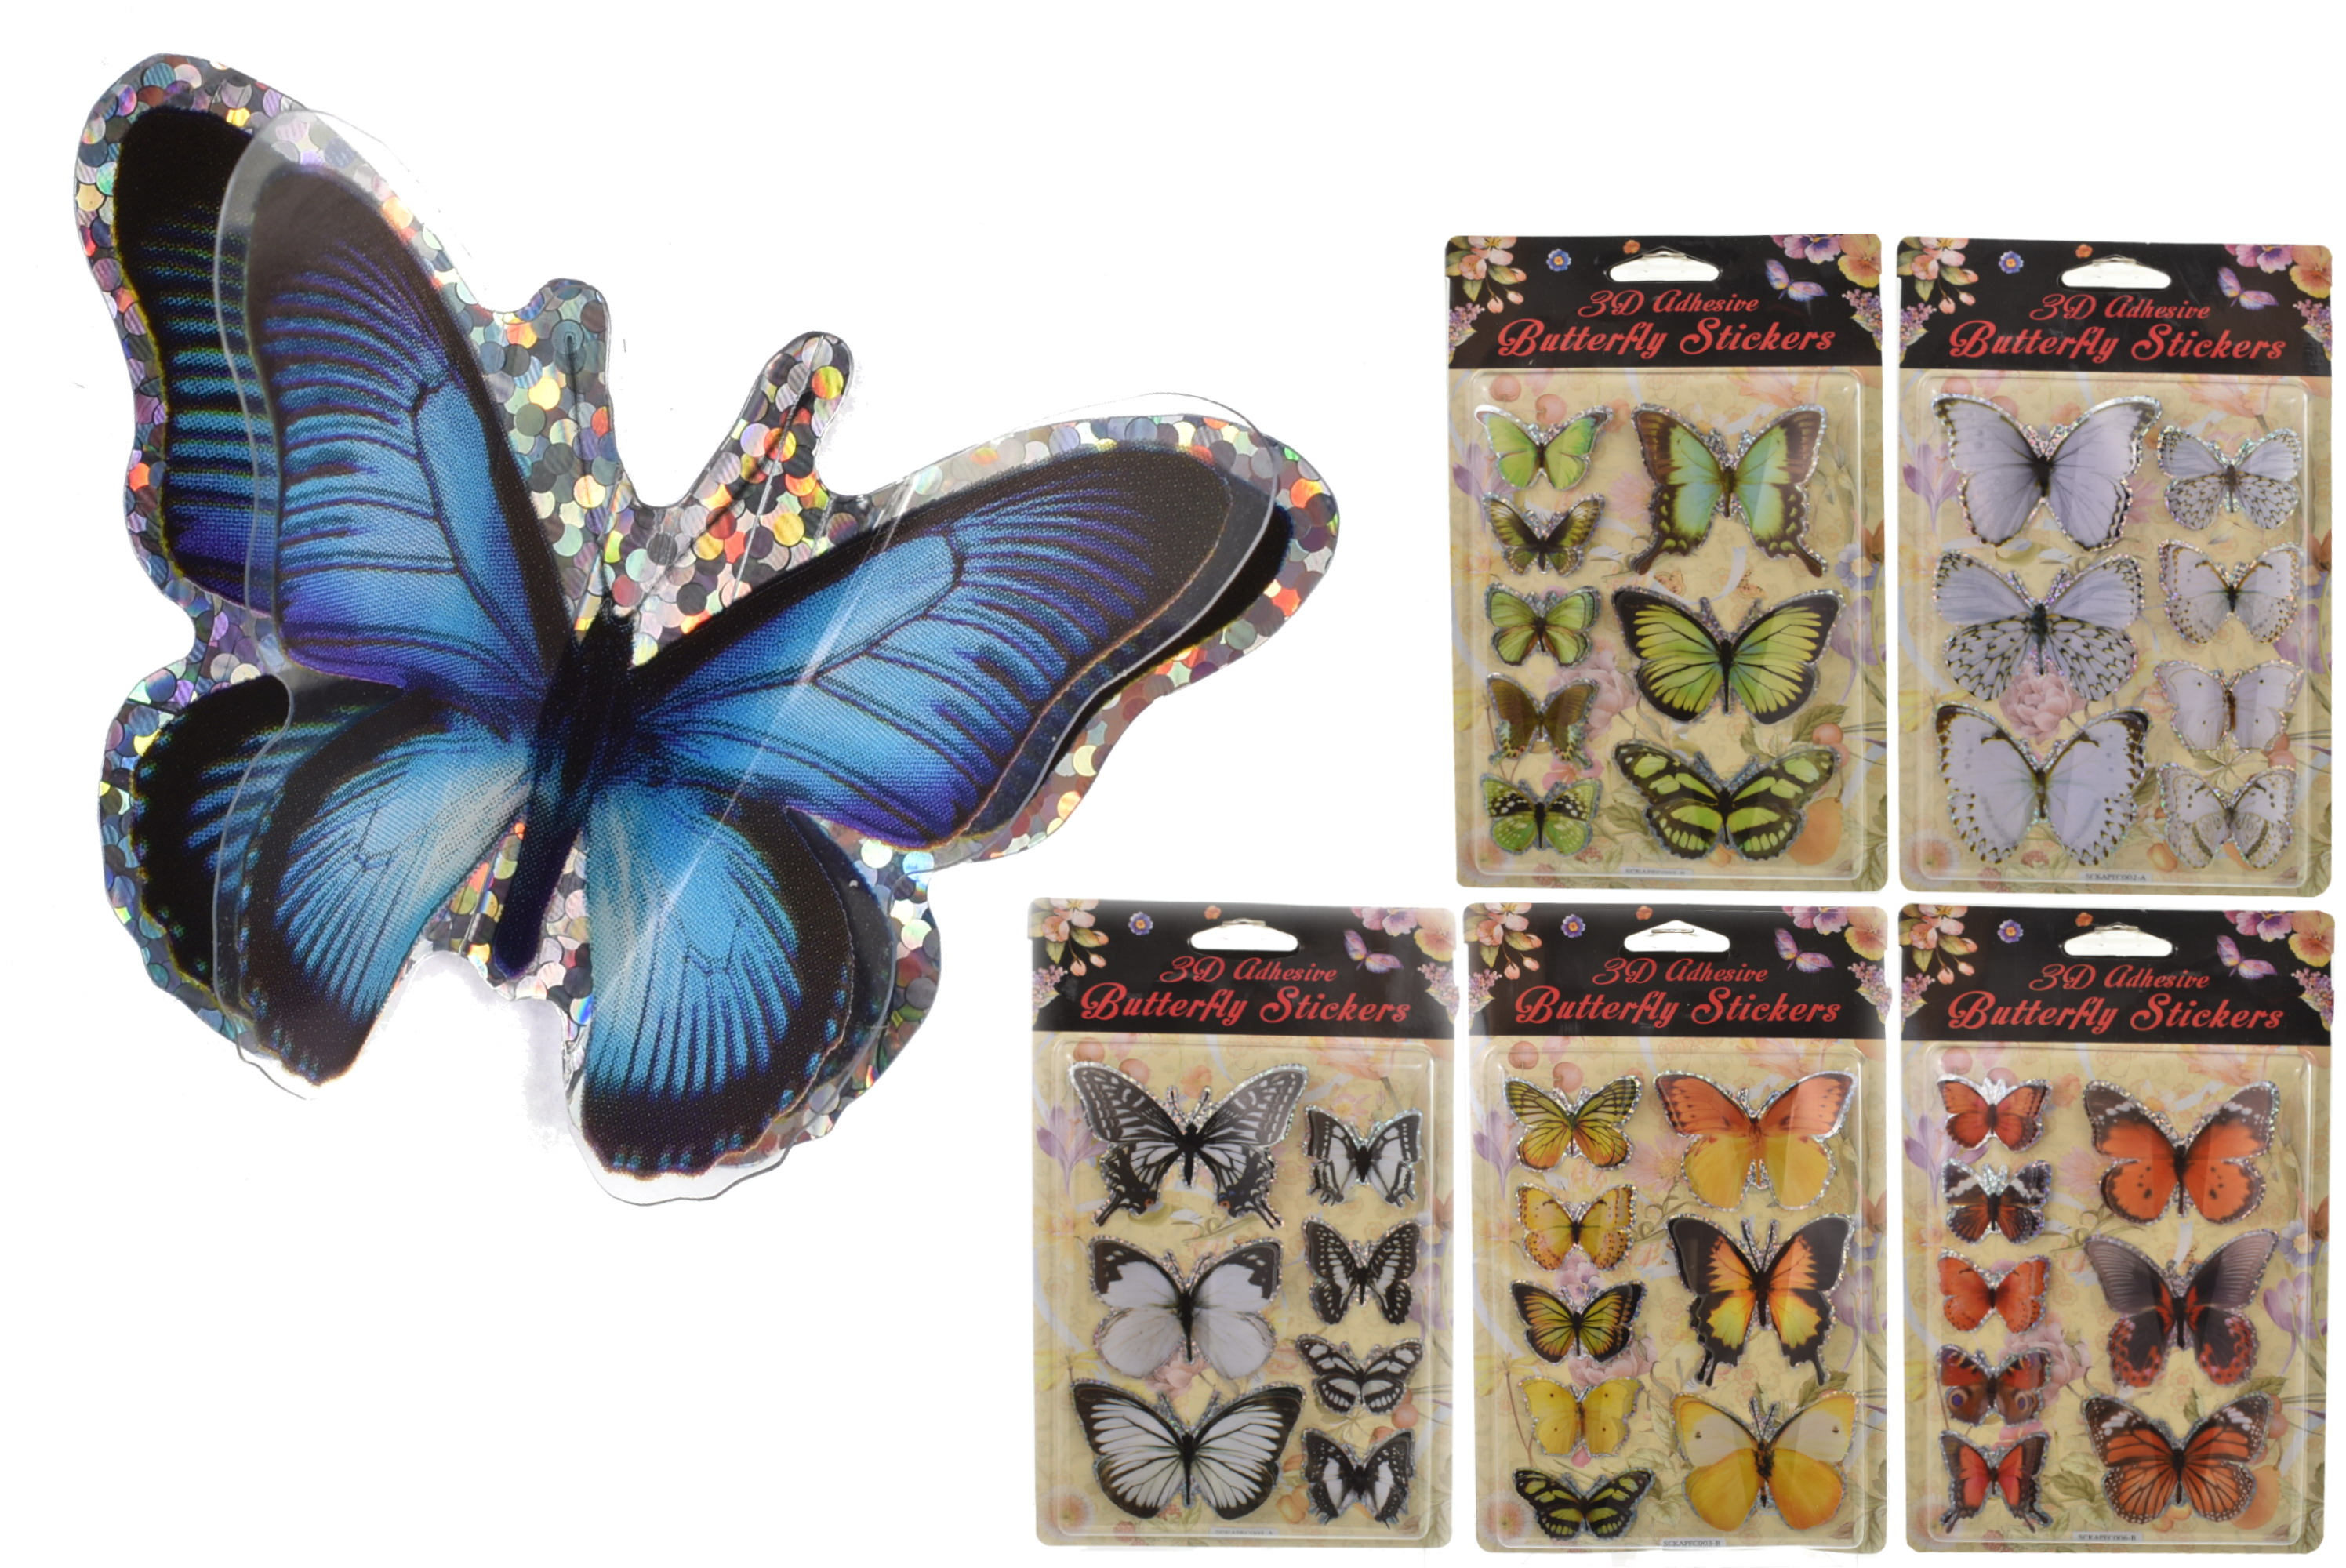 Butterfly Stickers (12 Assorted) - Double Blister